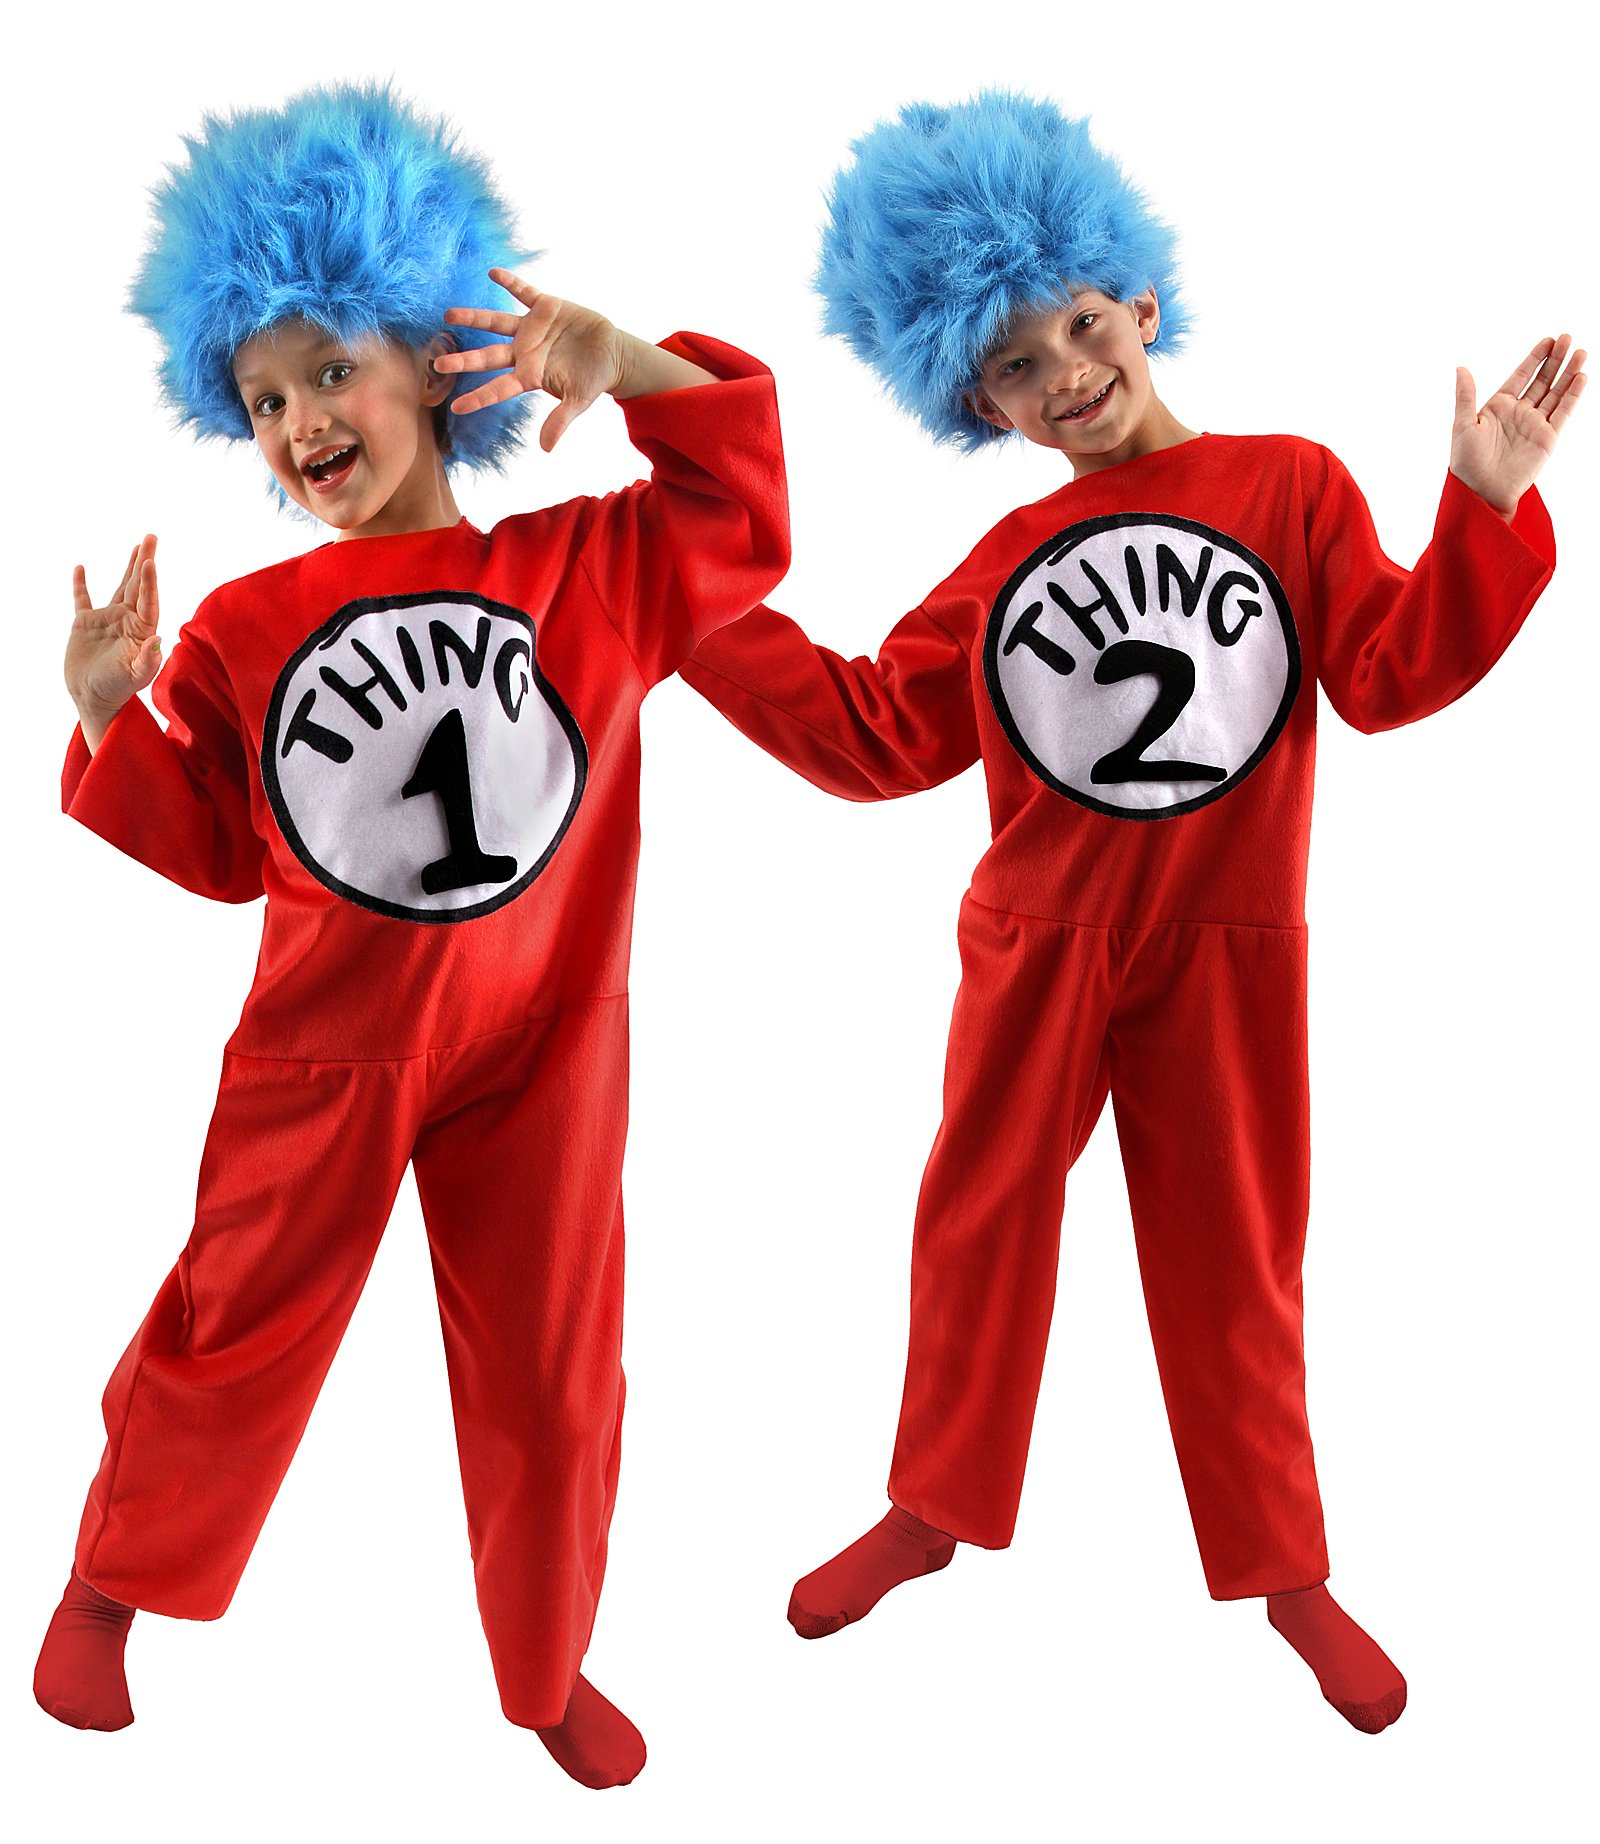 Dr. Seuss The Cat in the Hat - Thing 1 and Thing 2 Child Costume